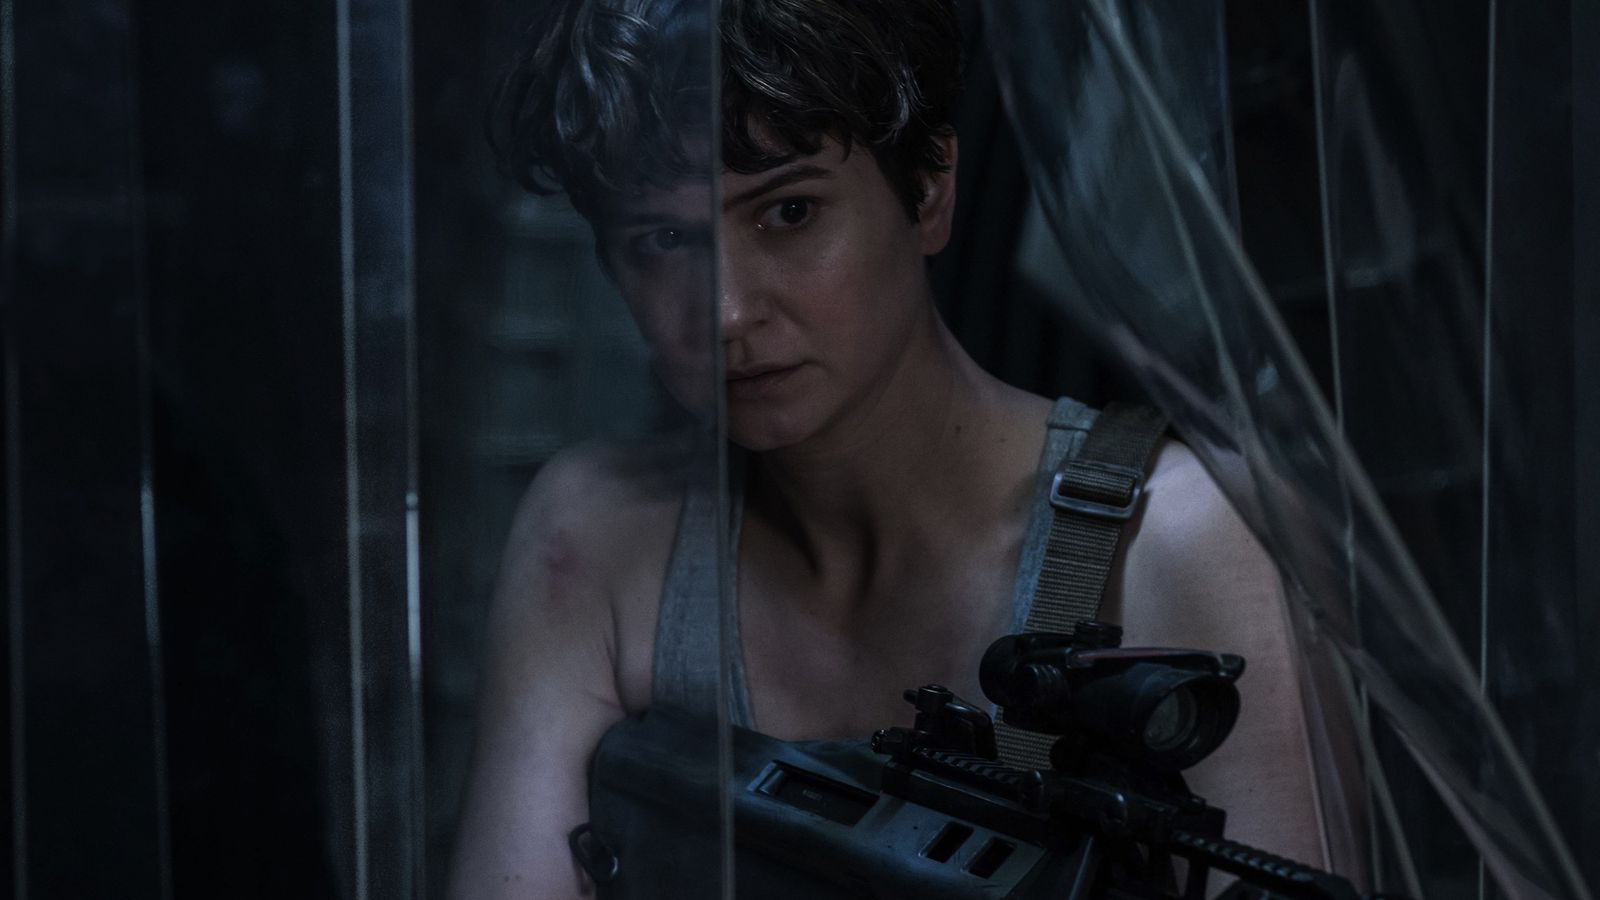 Alien: Covenant changes everything we know about cinema's most terrifying monster